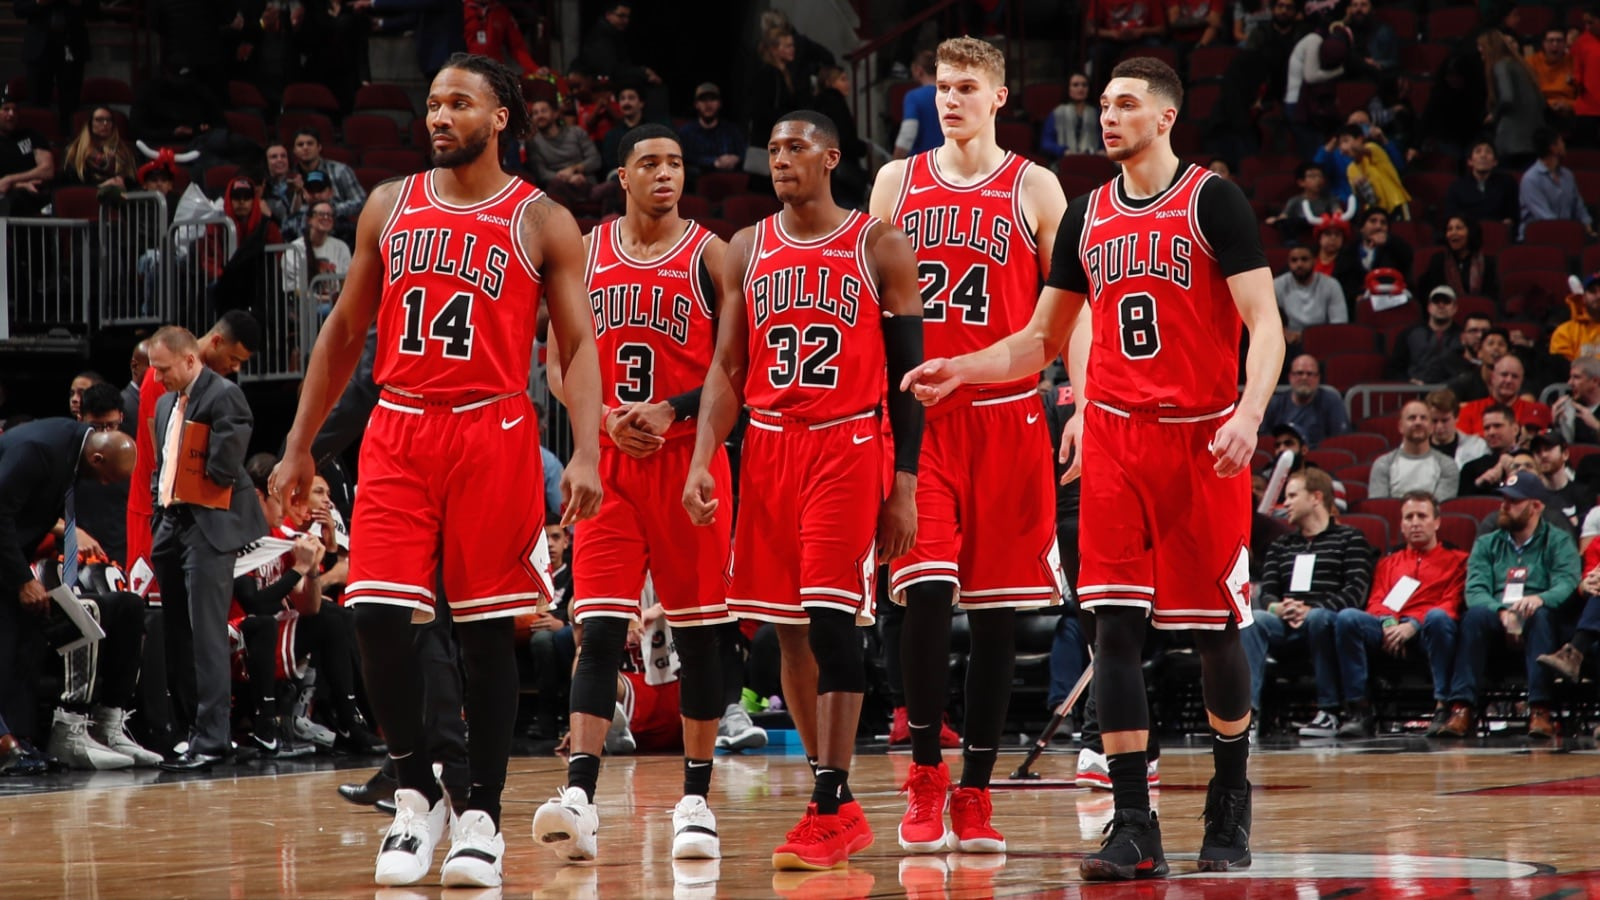 Bulls team walks on the court